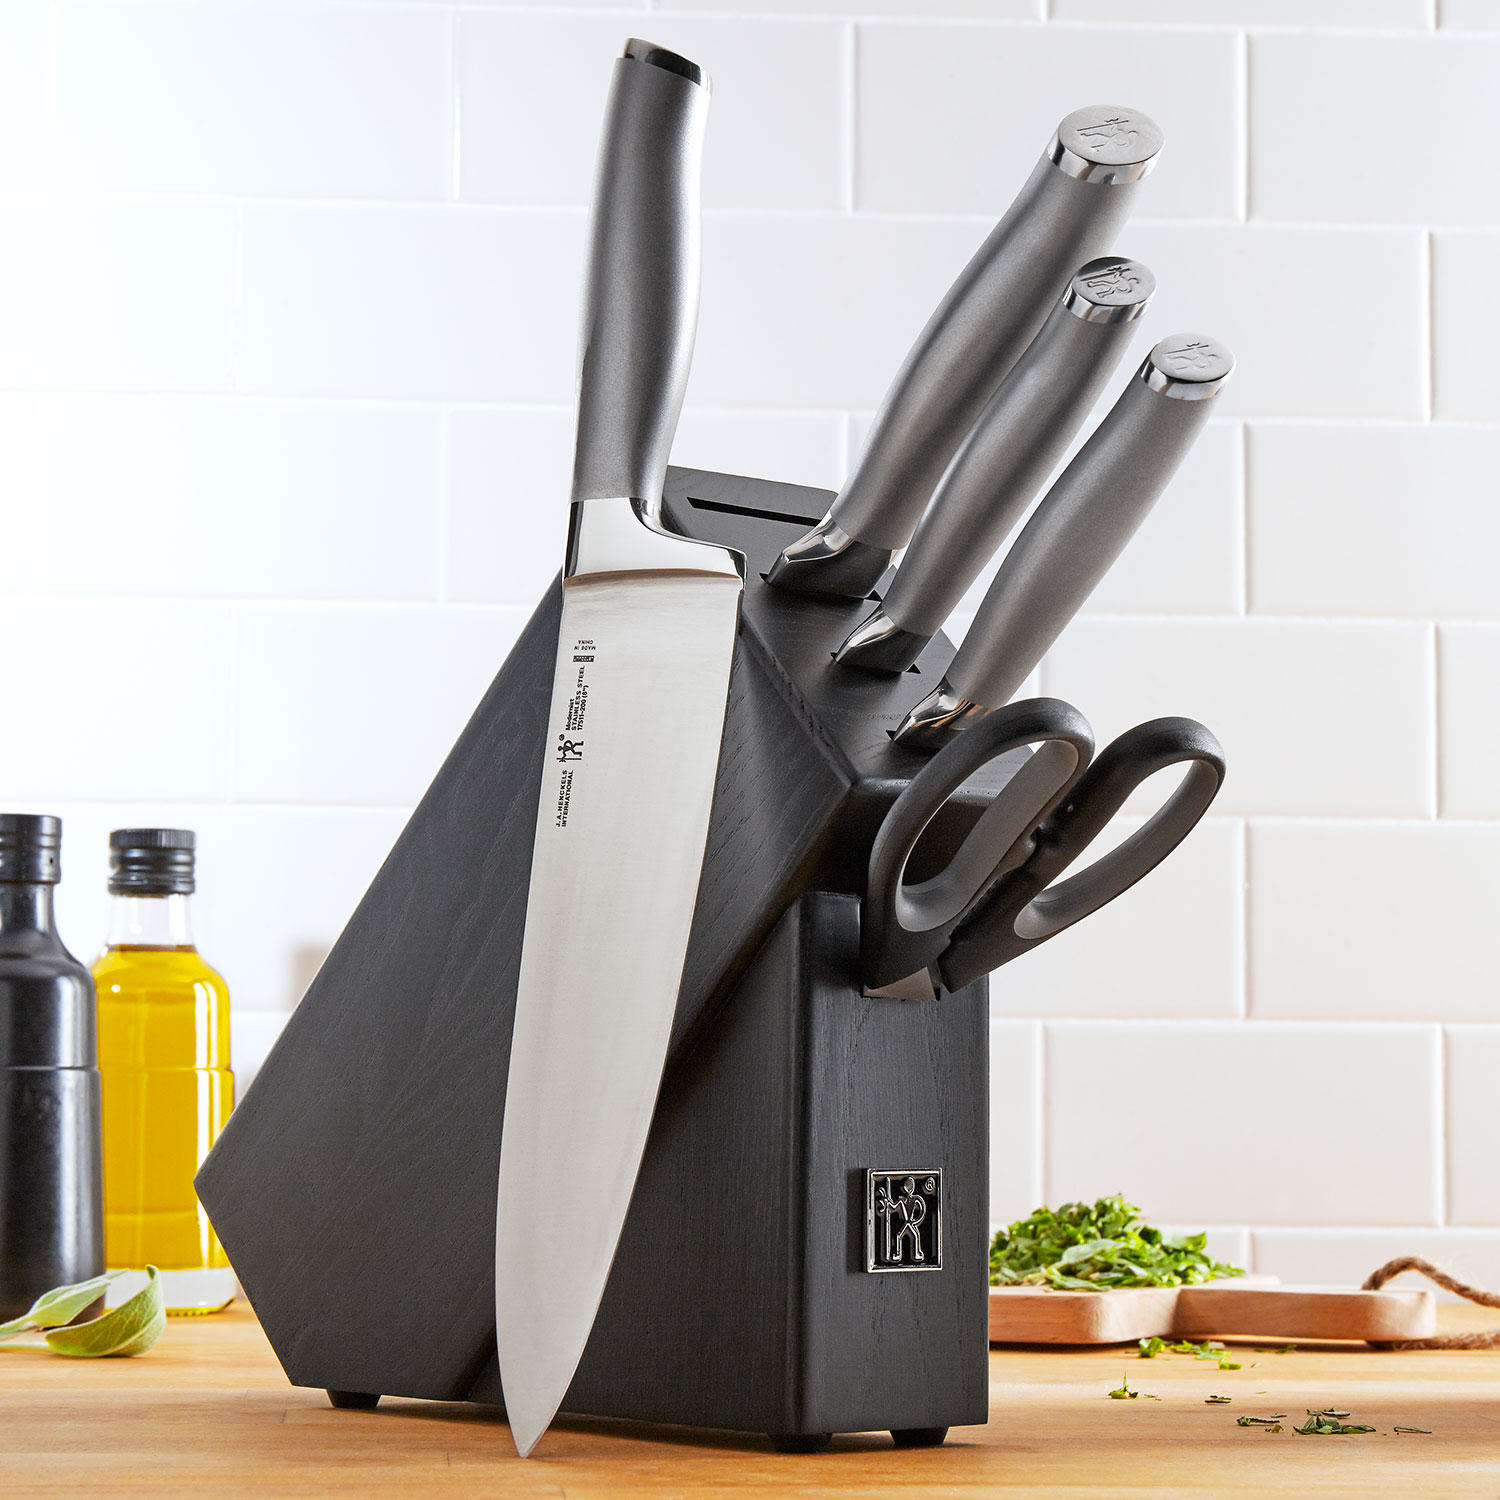 The set, which includes four knives, a pair of shears, and a knife block